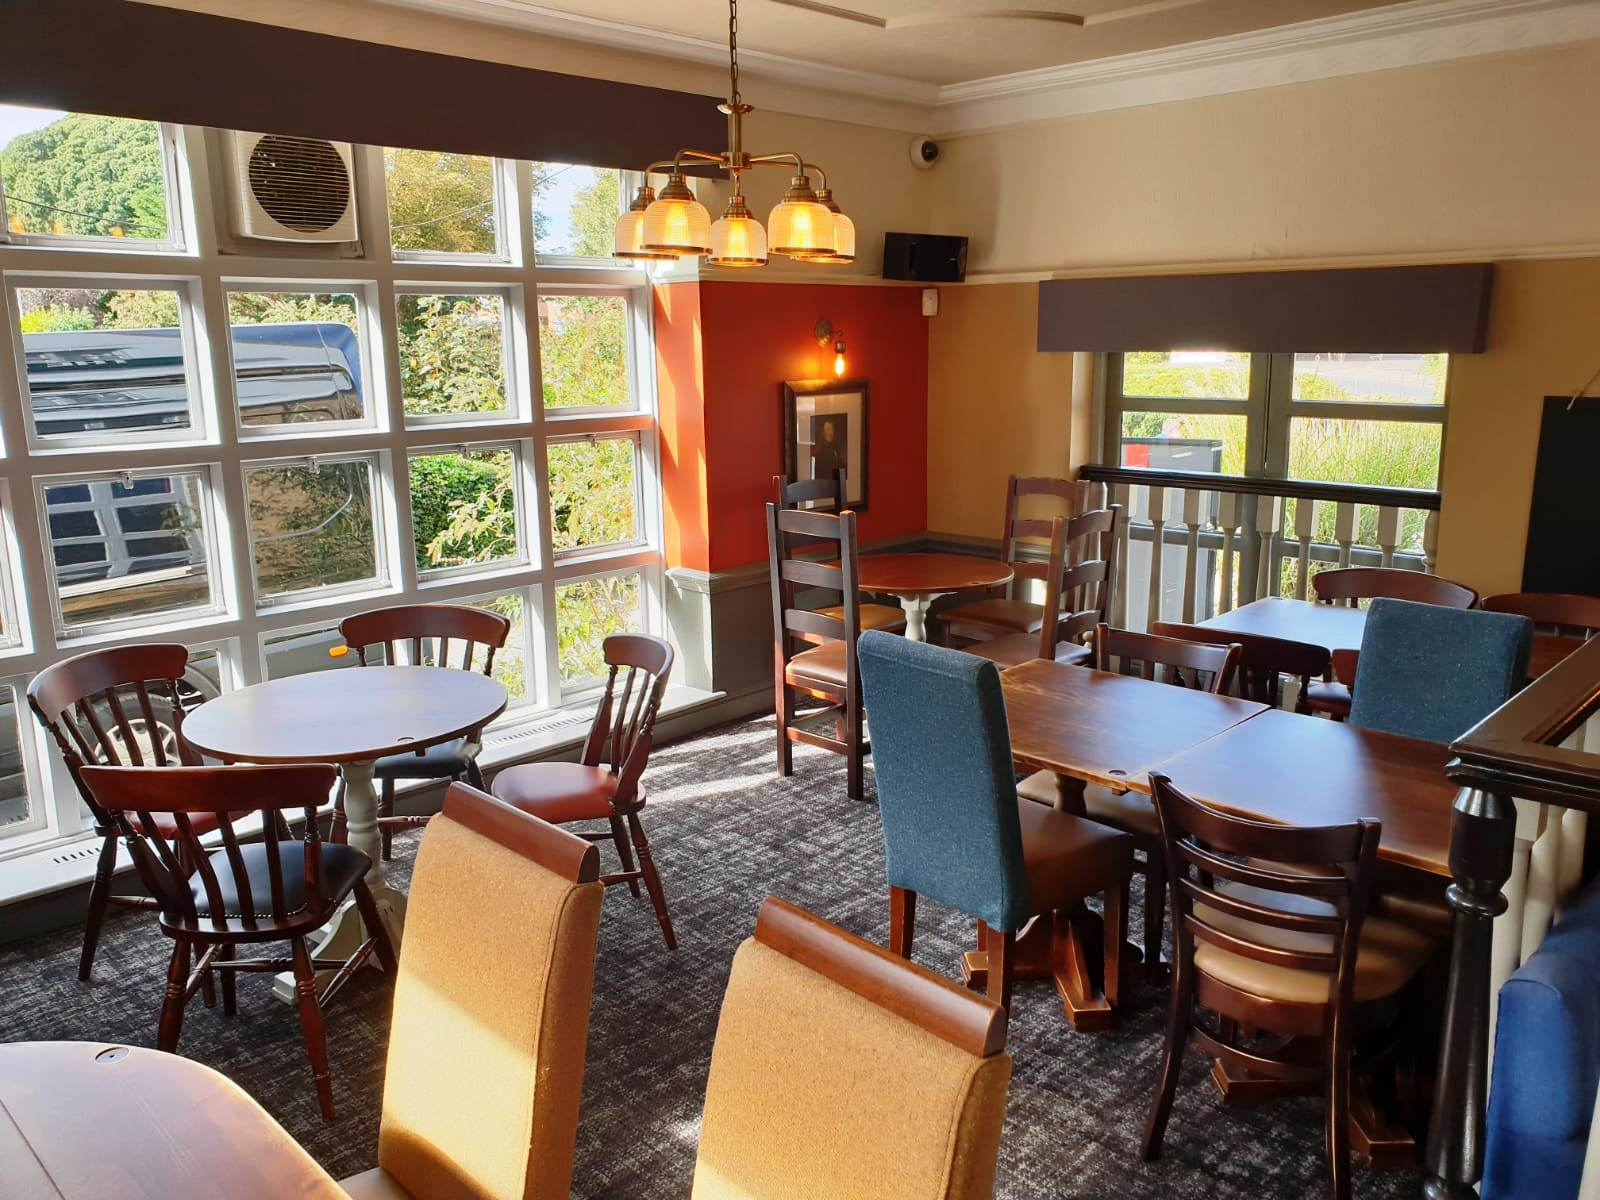 The Mulberry, Worthing